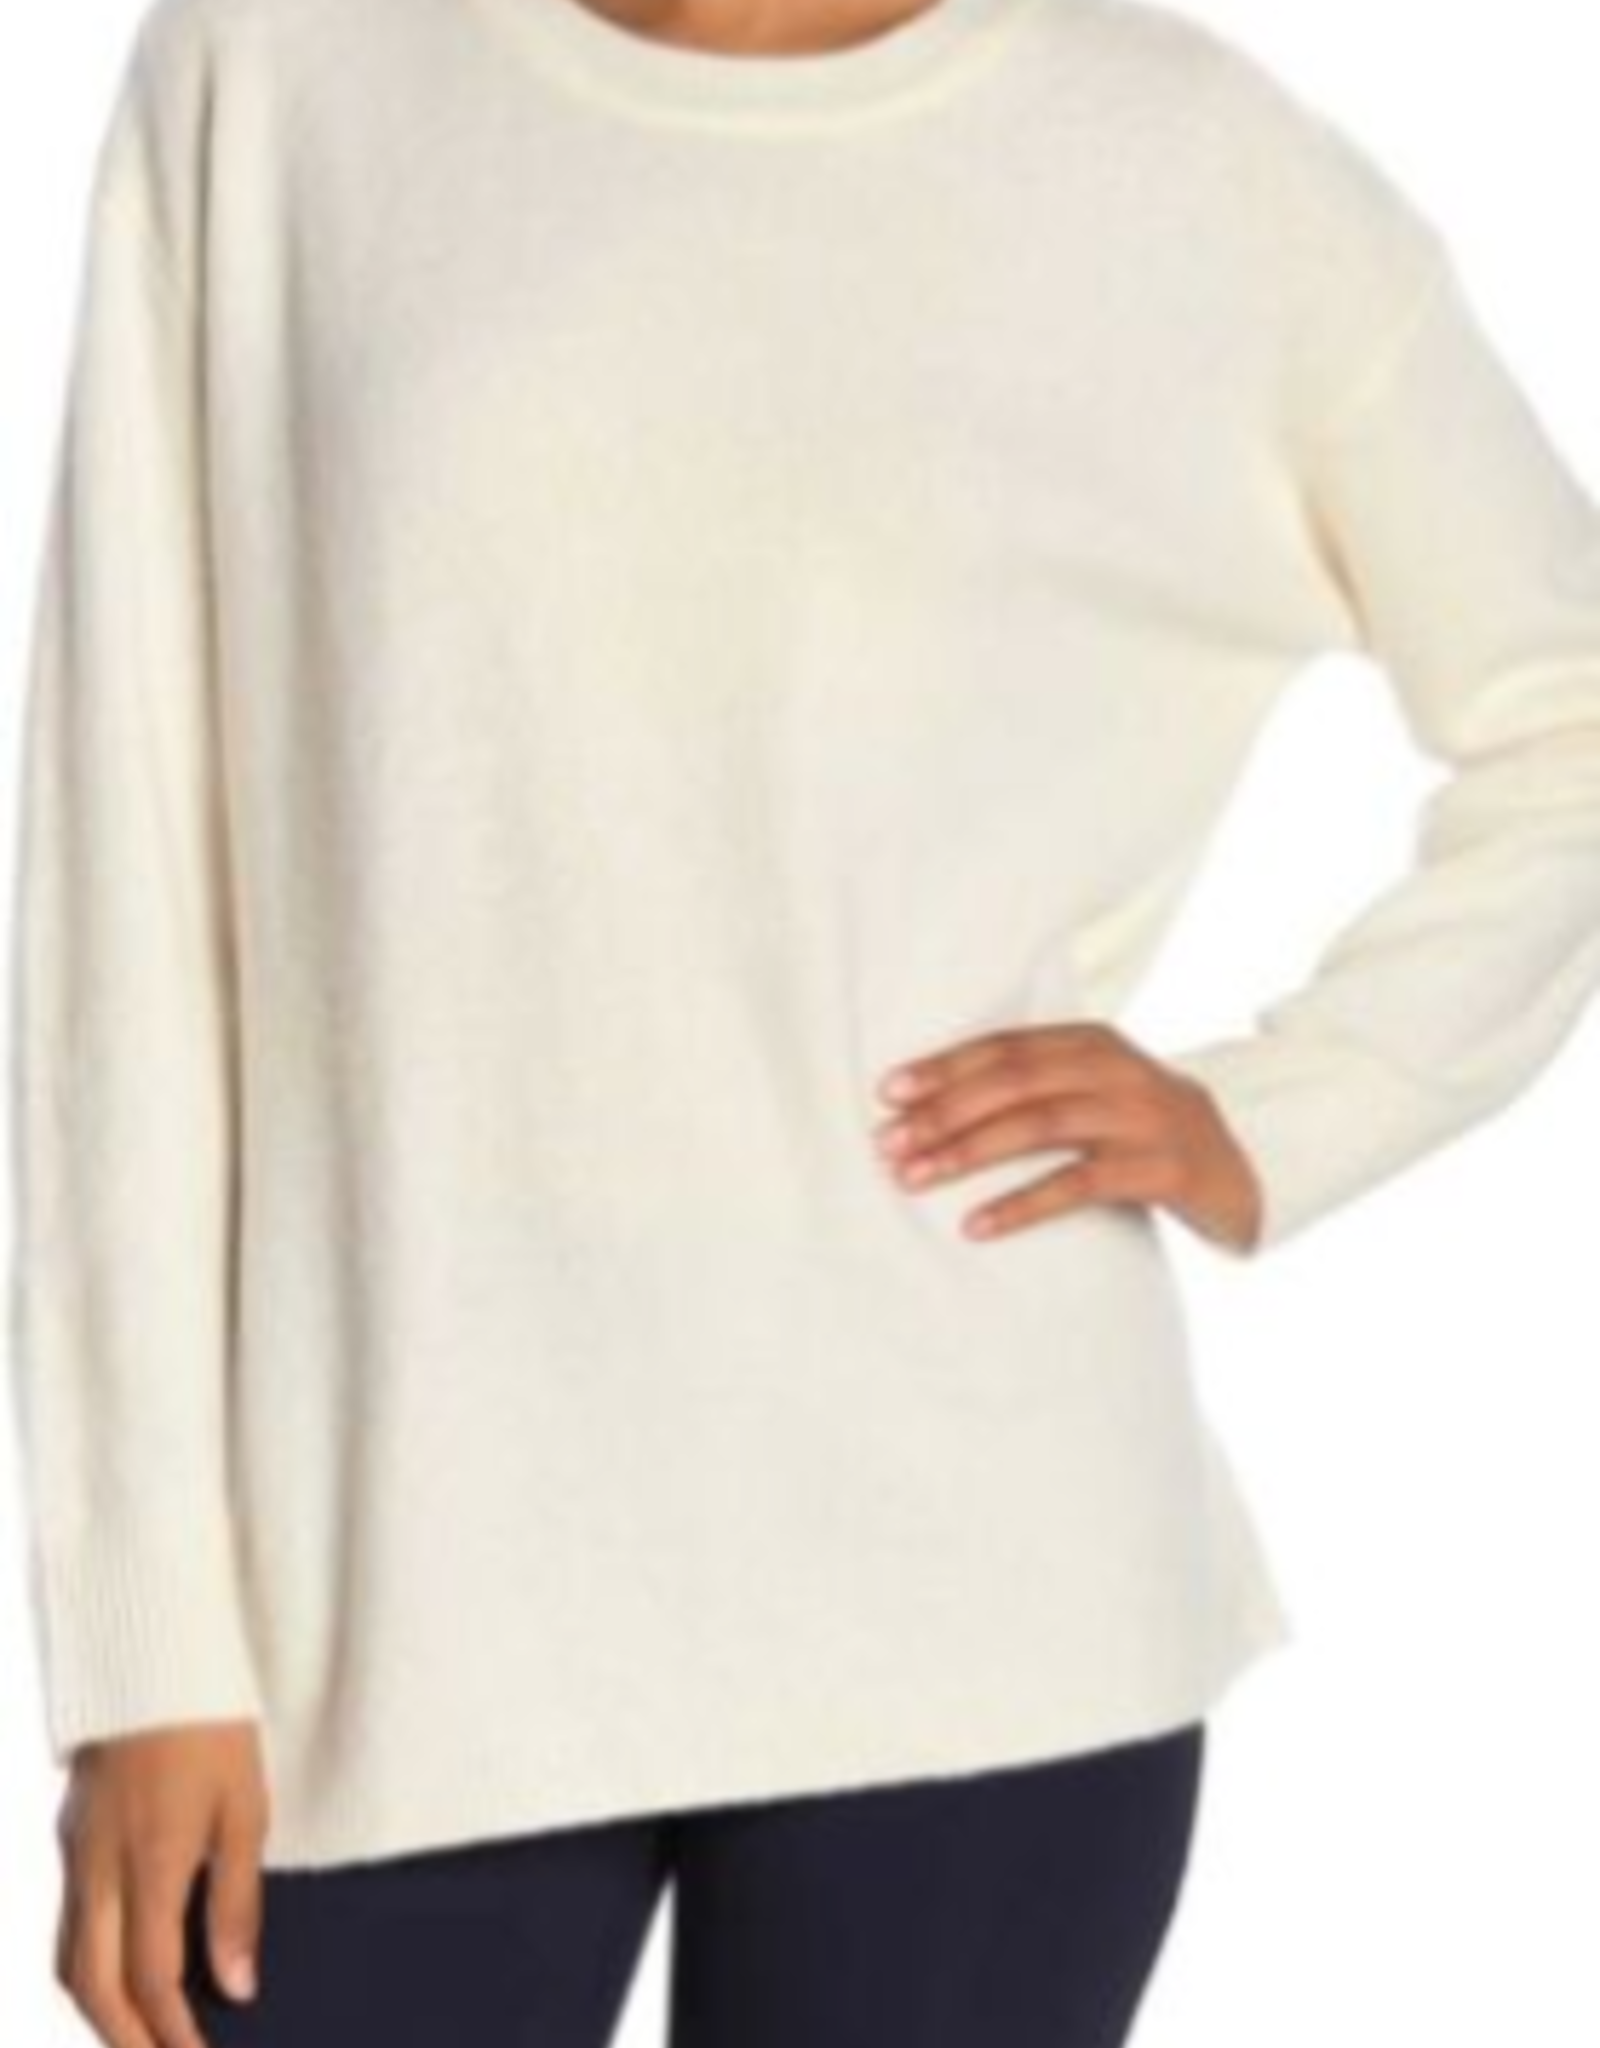 James Perse JAMES PERSE Oversized Cashmere Sweater Size 3